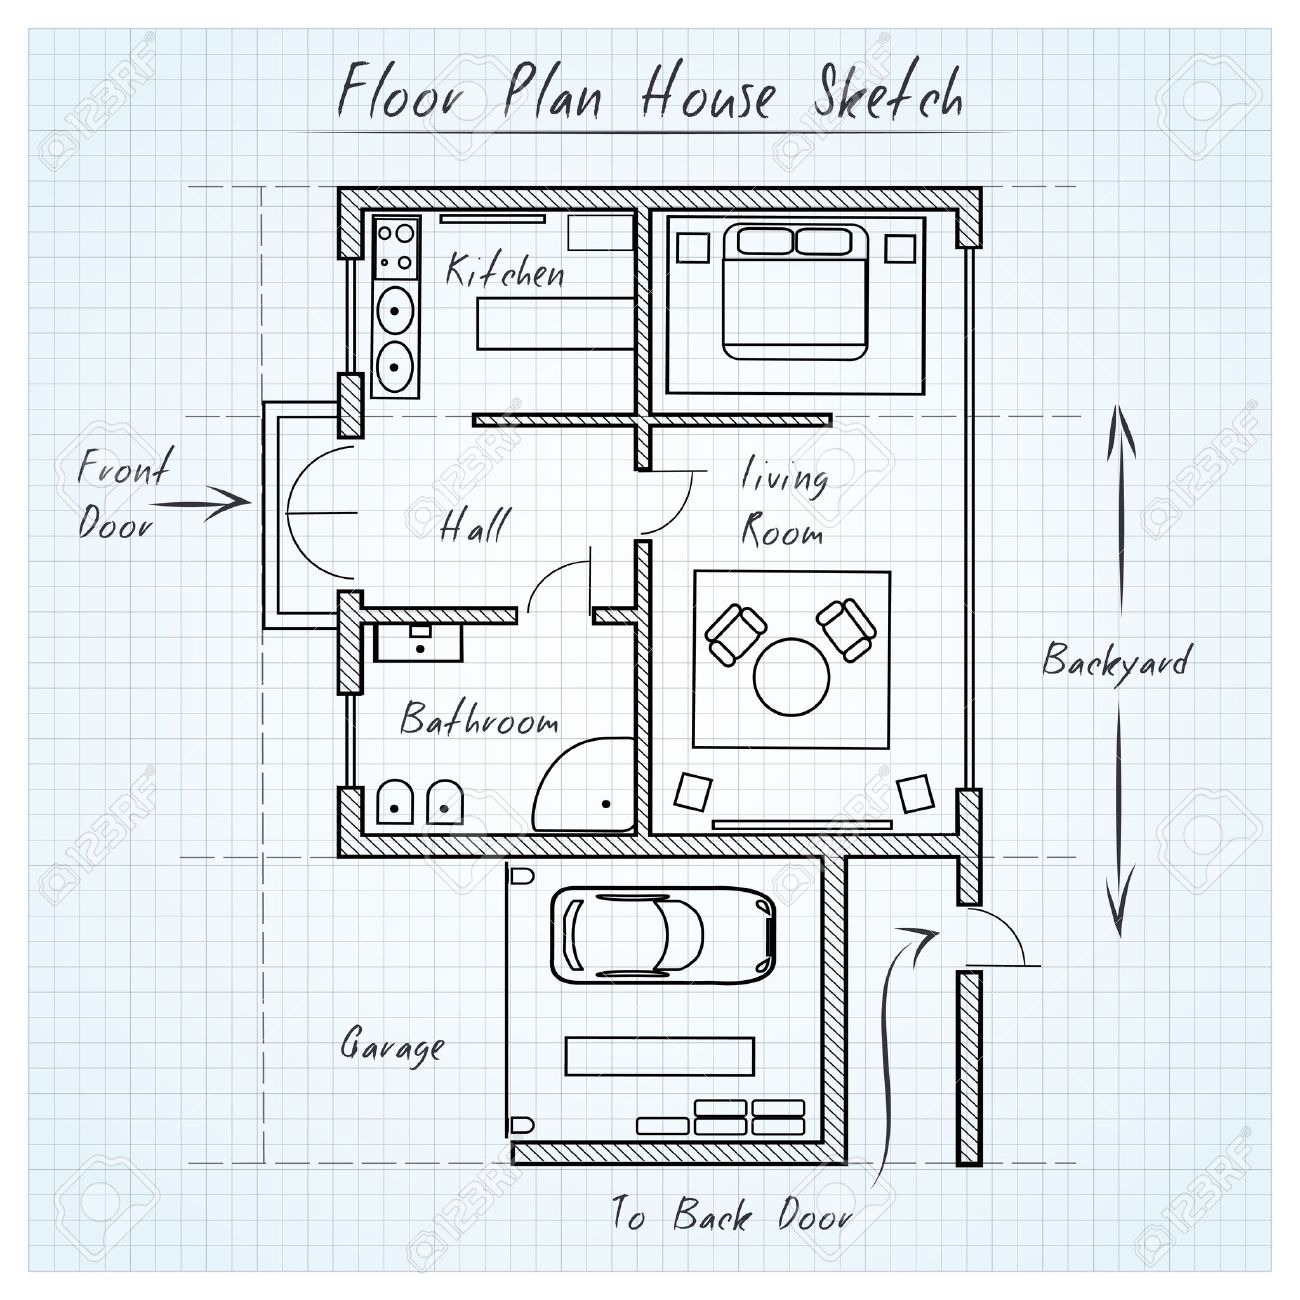 Floor Plan House Sketch Royalty Free Cliparts, Vectors, And Stock ...